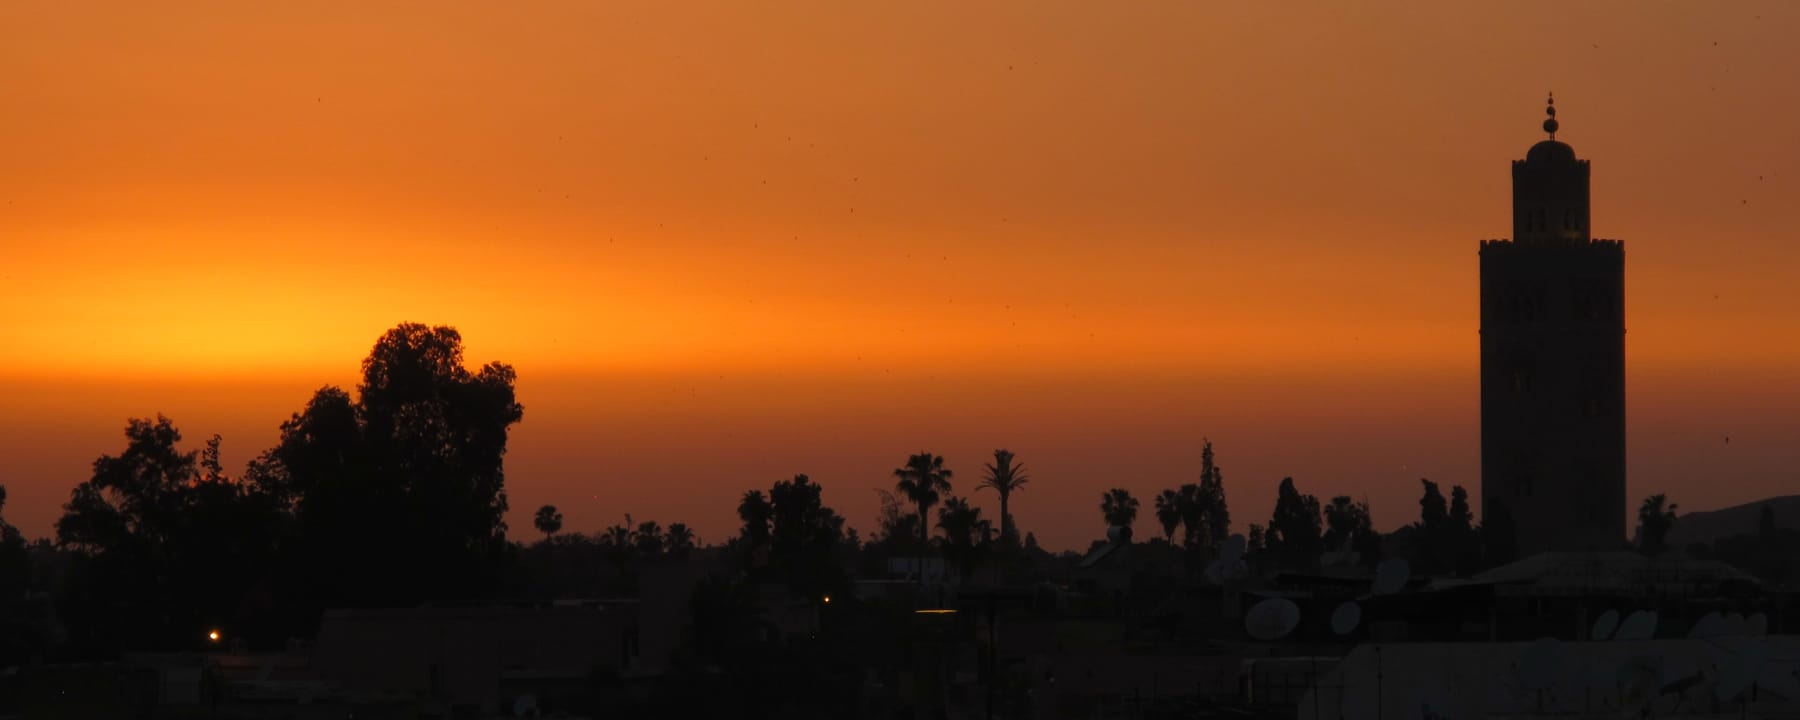 Koutoubia Mosque Marrakech sunset_Source NOSADE